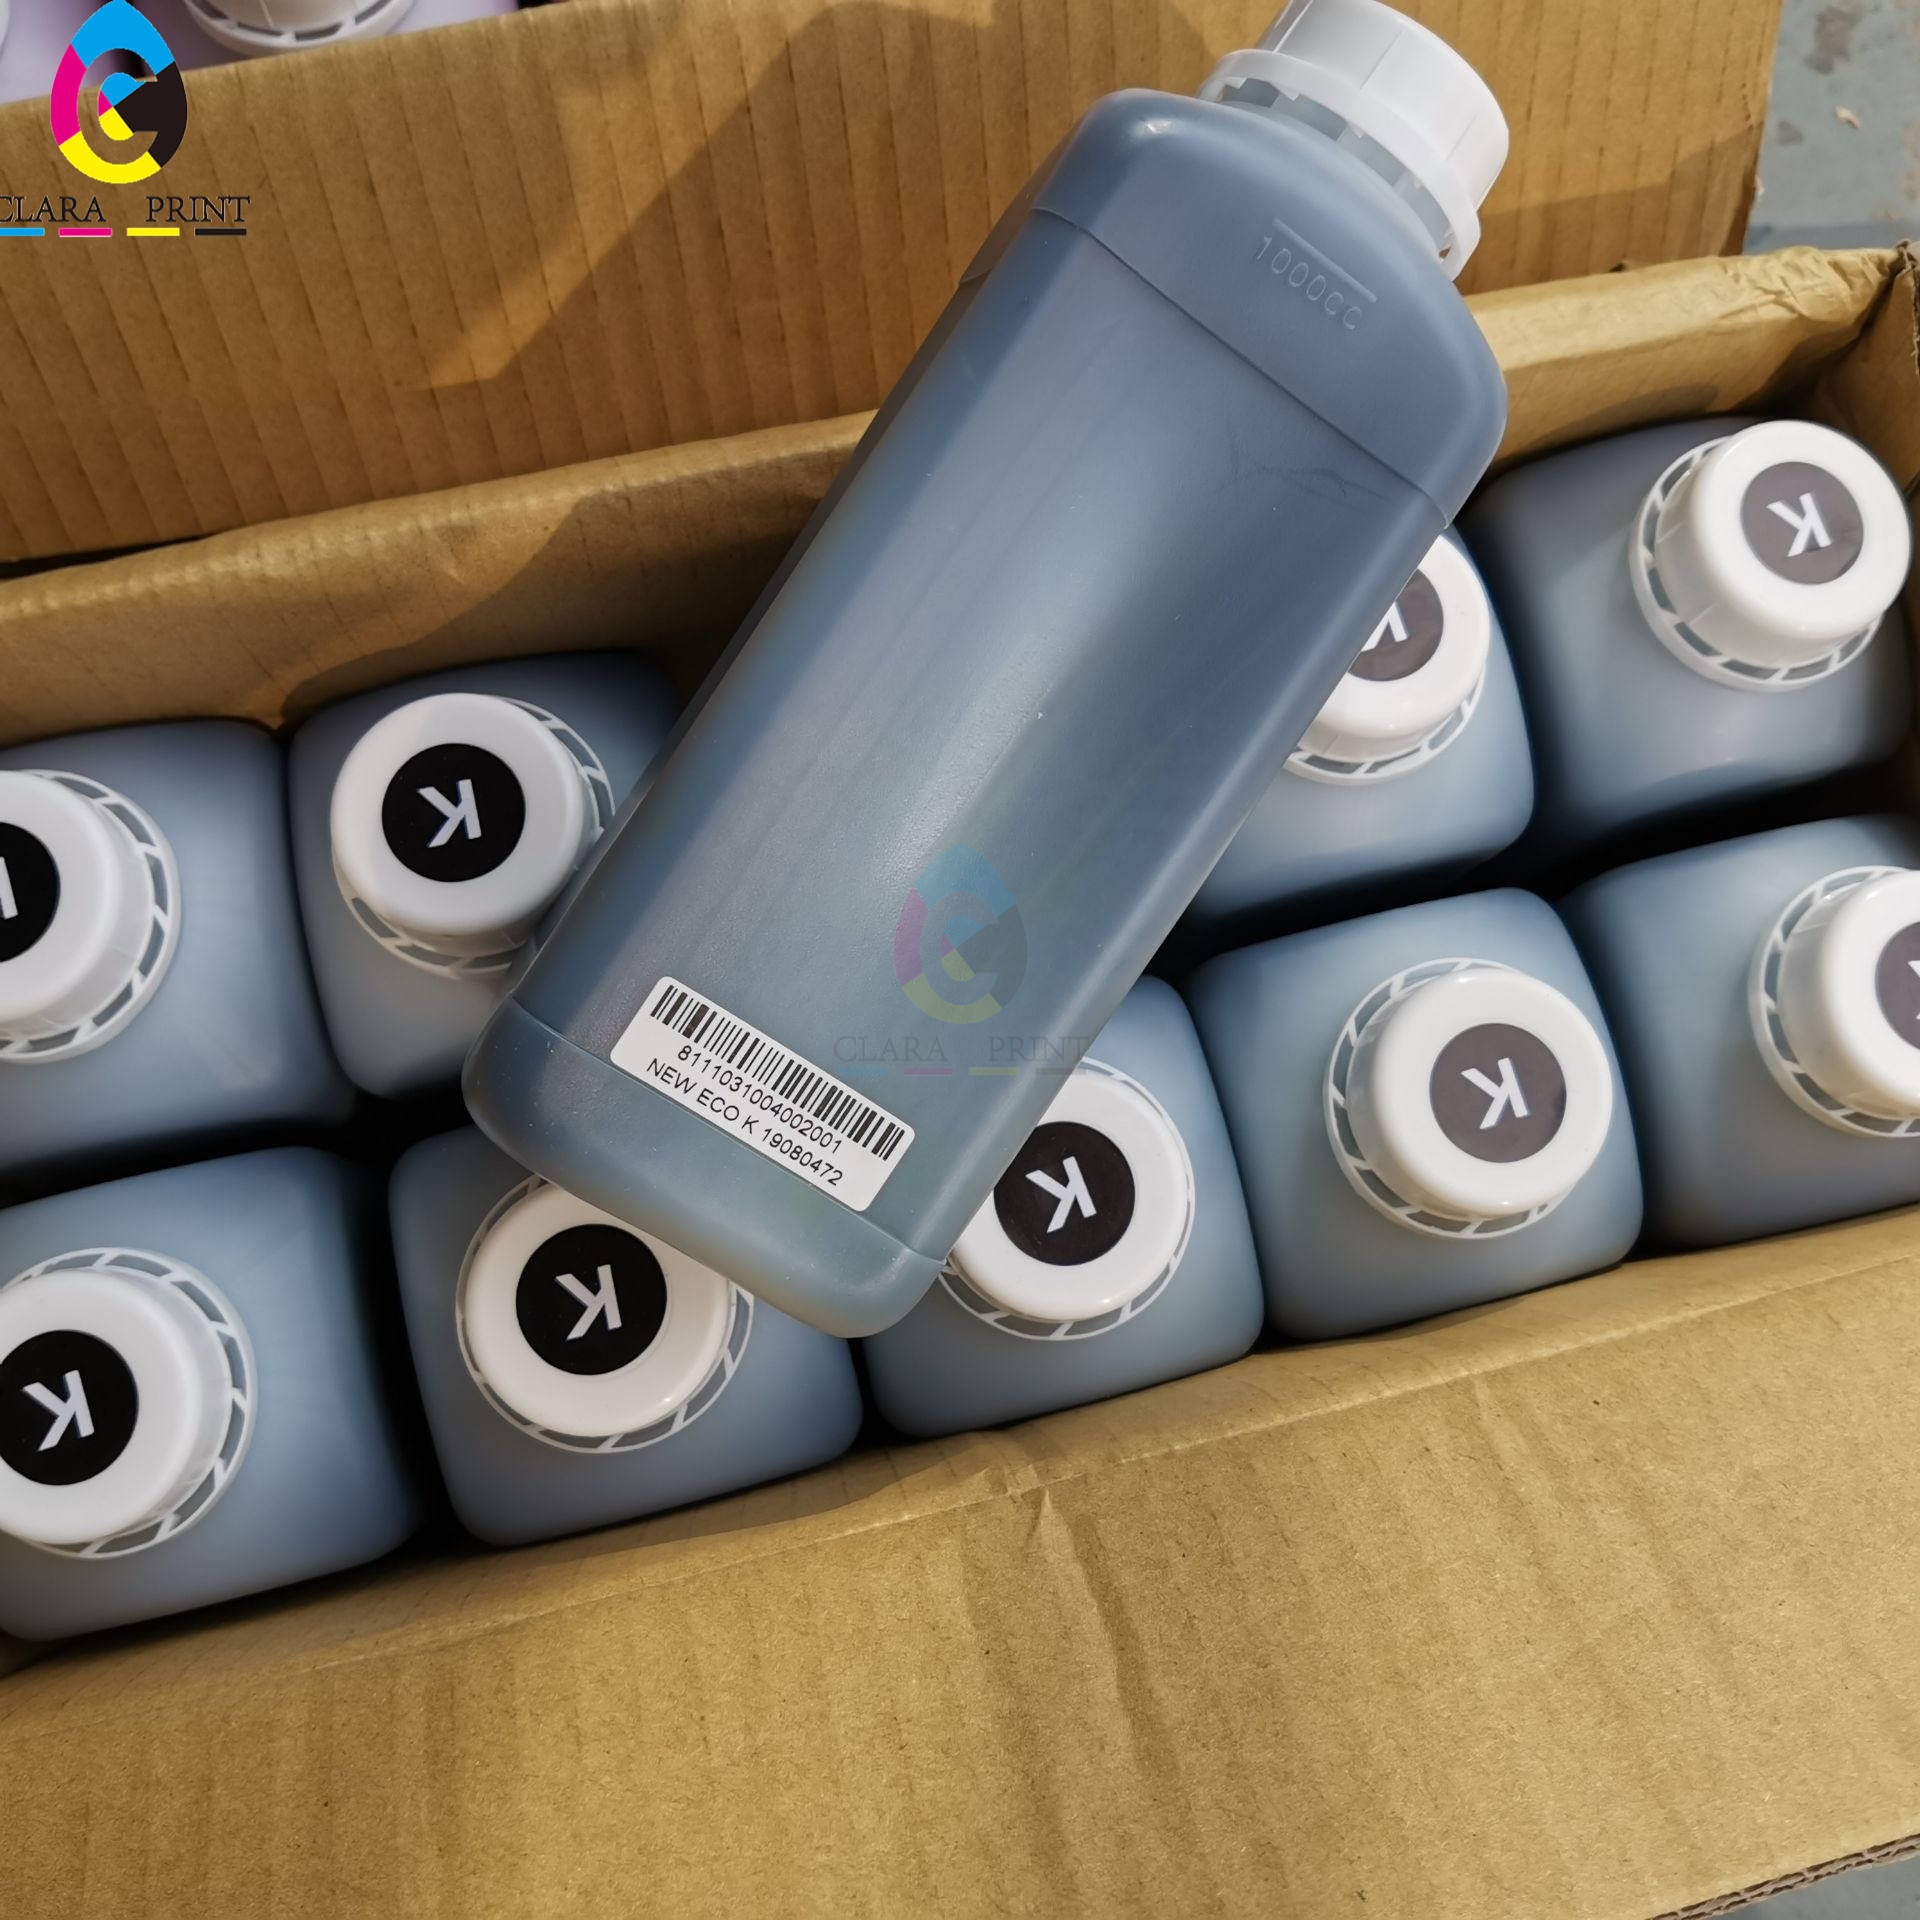 1000ml lk Jetbest Eco Solvent Ink for Roland VS640/VS300/vs640i/RS 640/ XR-640 in square bottle 1000ml ink